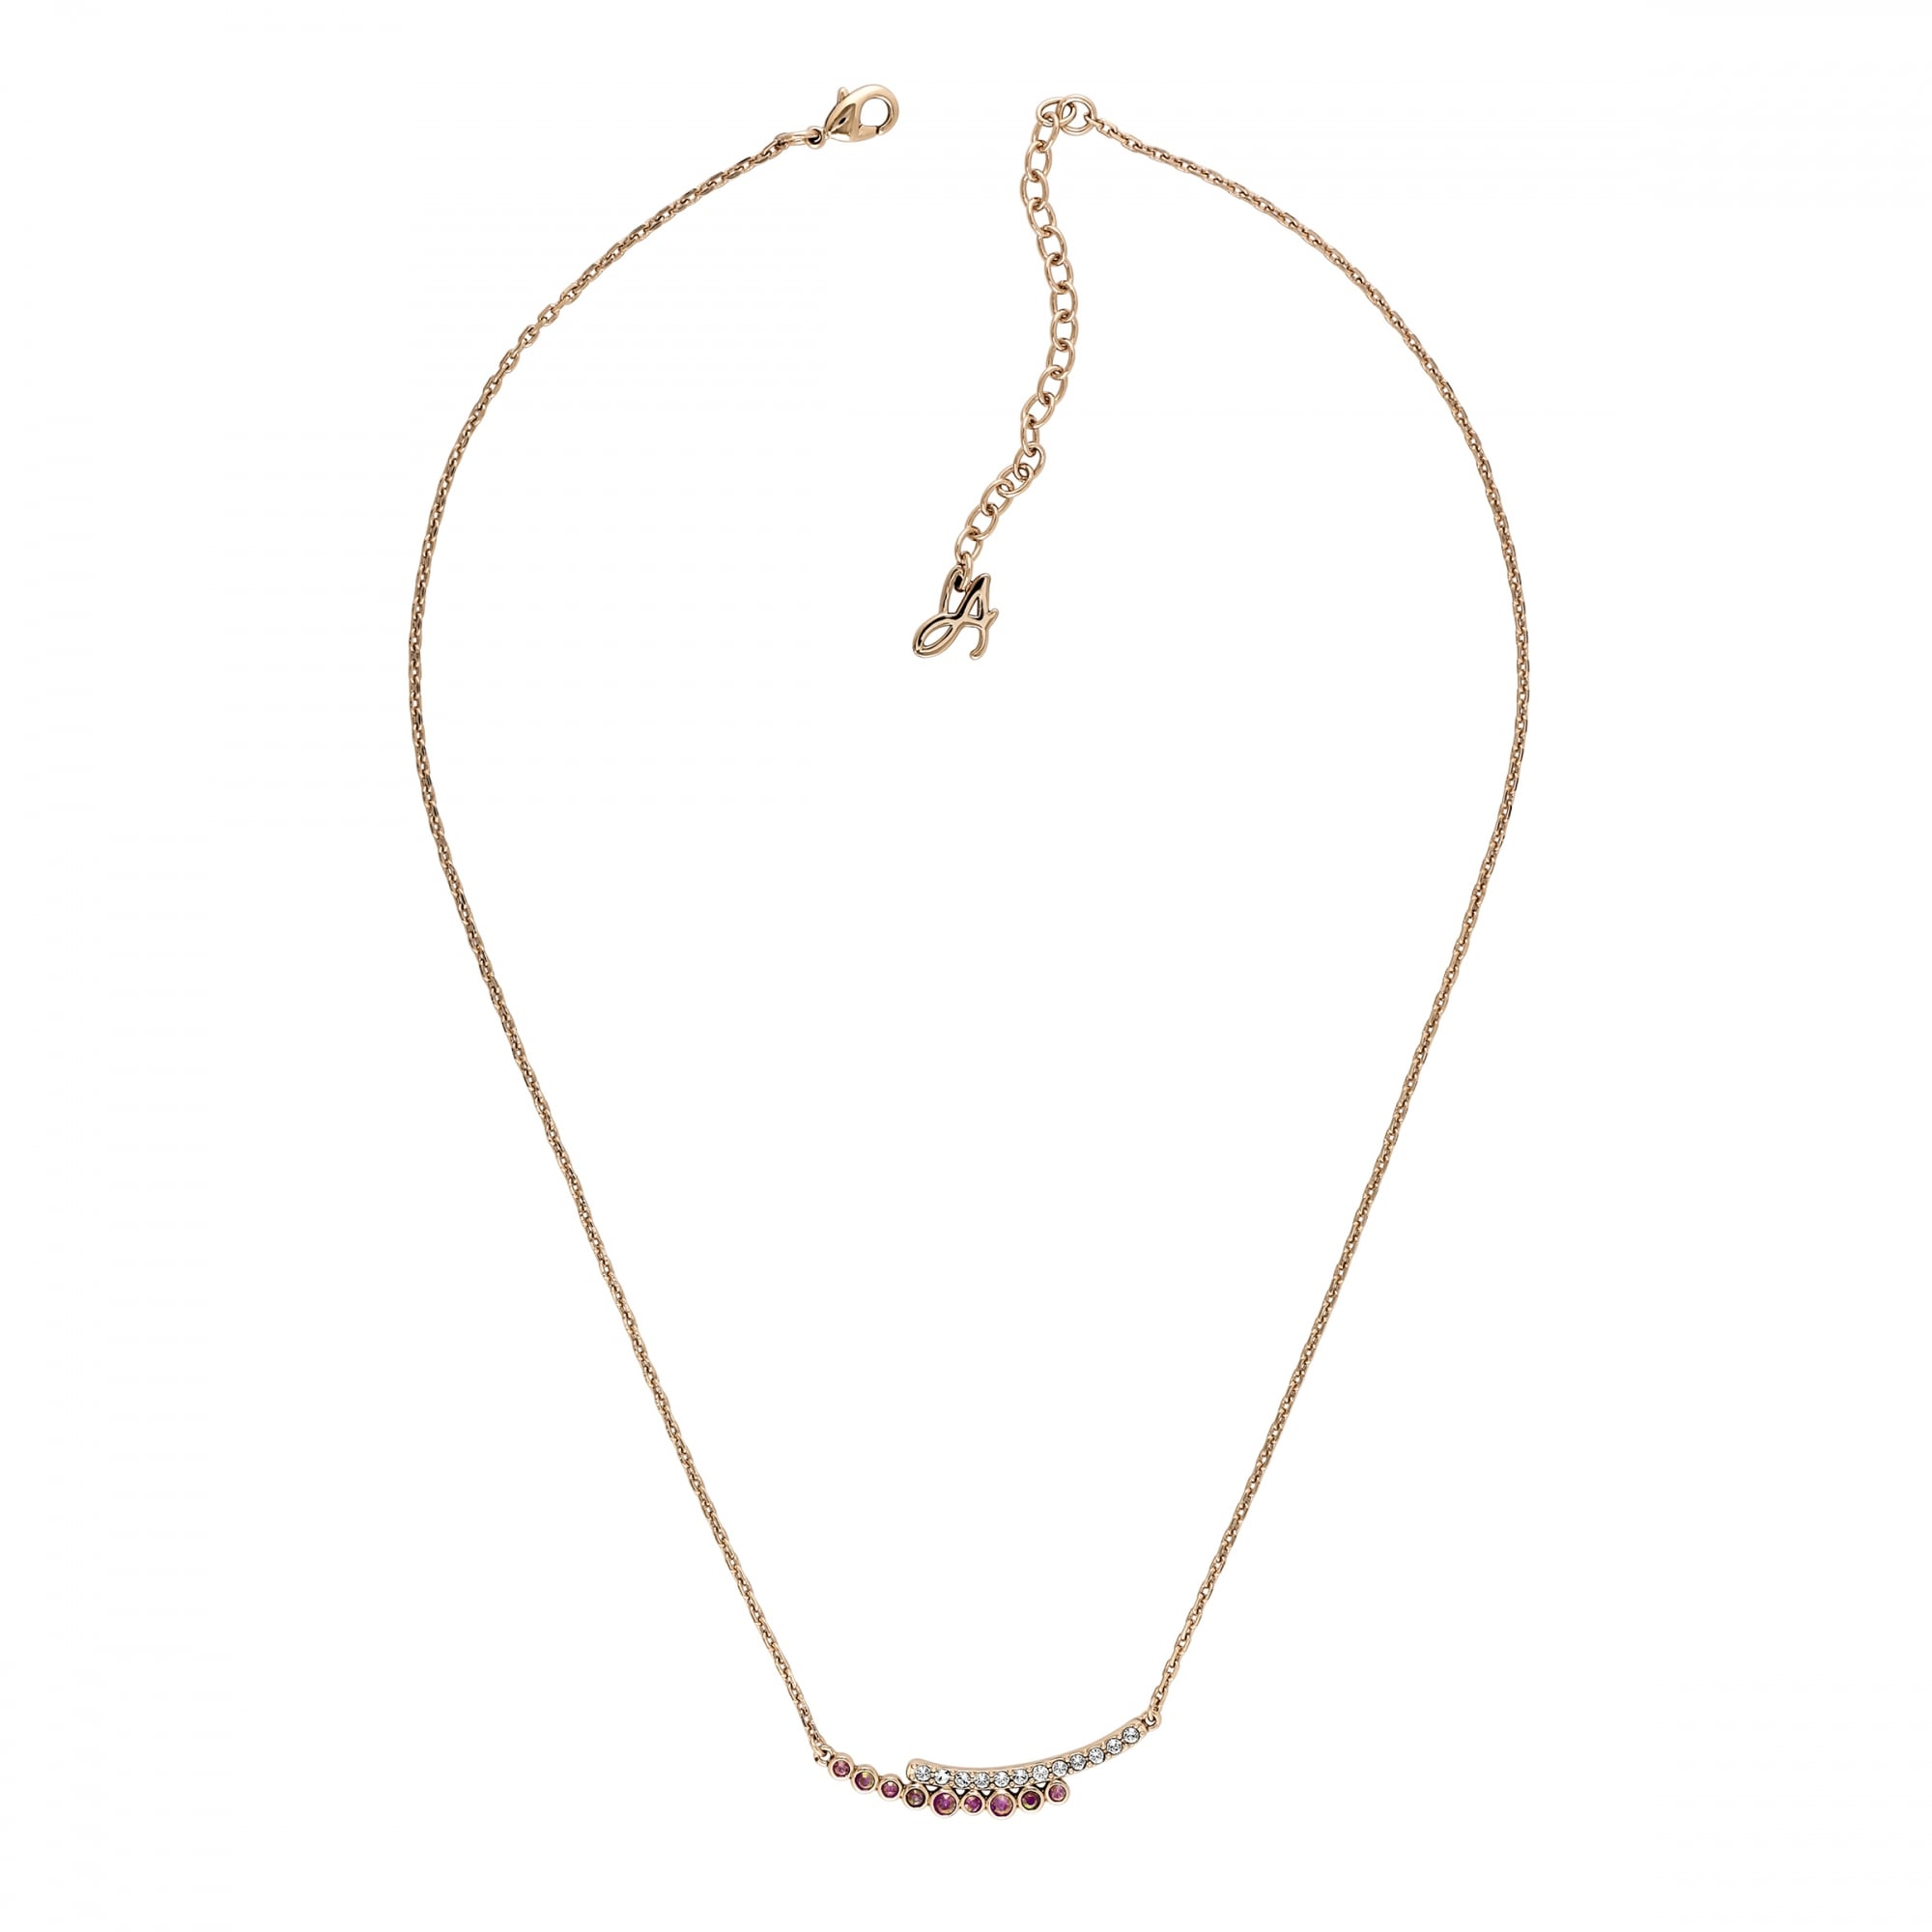 d0624ea9b Adore Gold Curved Bar White / Pink Necklace Created With Swarovski® Crystals